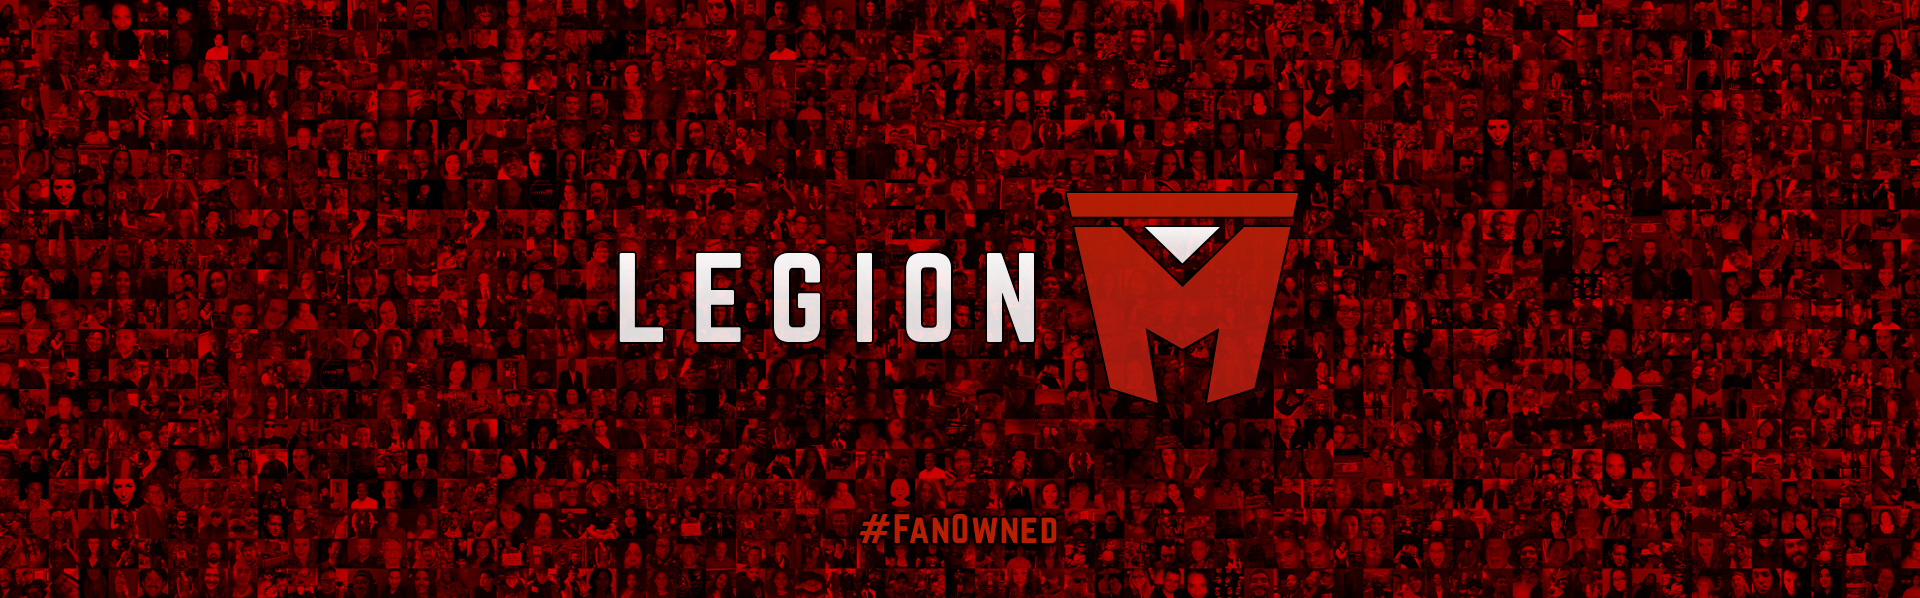 This Legion M photomosaic (click to enlarge) is included in the end credits of Mandy, which premiered at the 2018 Sundance Film Festival.